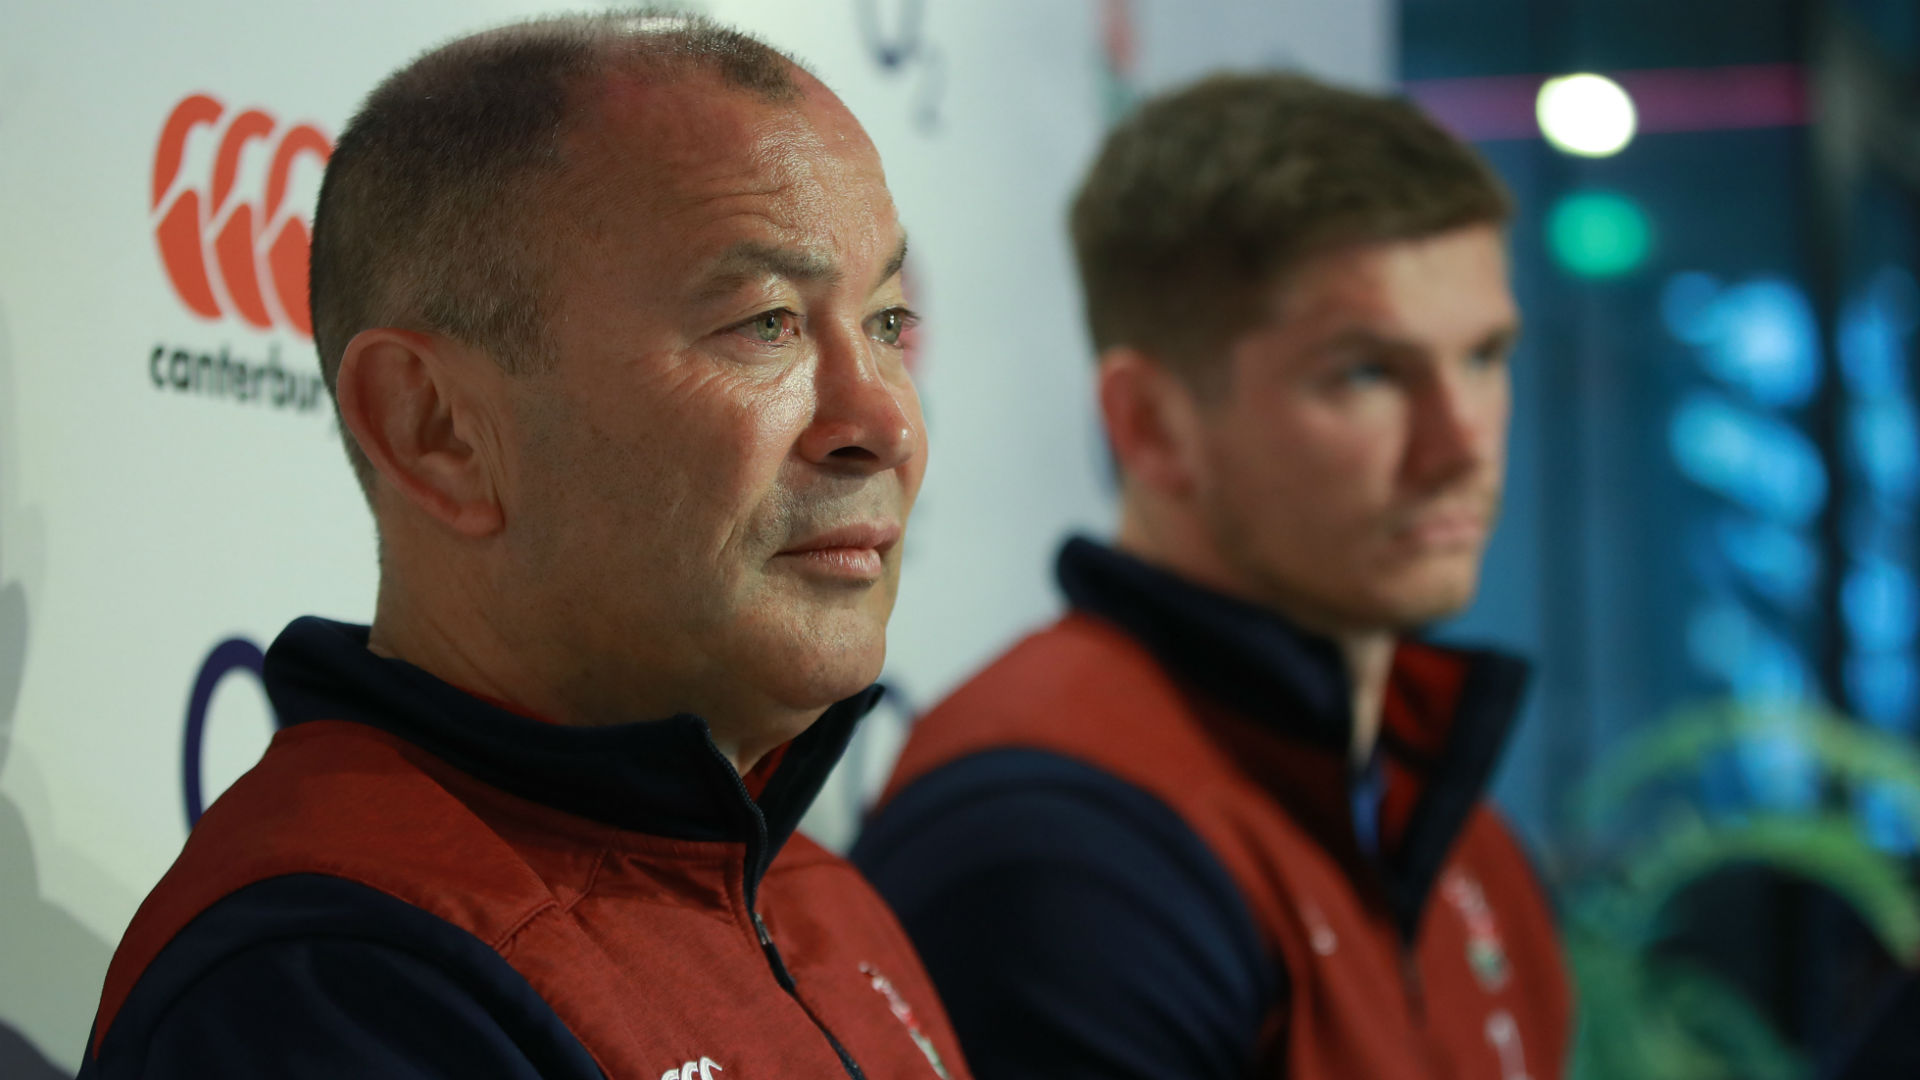 Six Nations 2020: Expectations high for England despite Vunipola absence and Saracens scandal